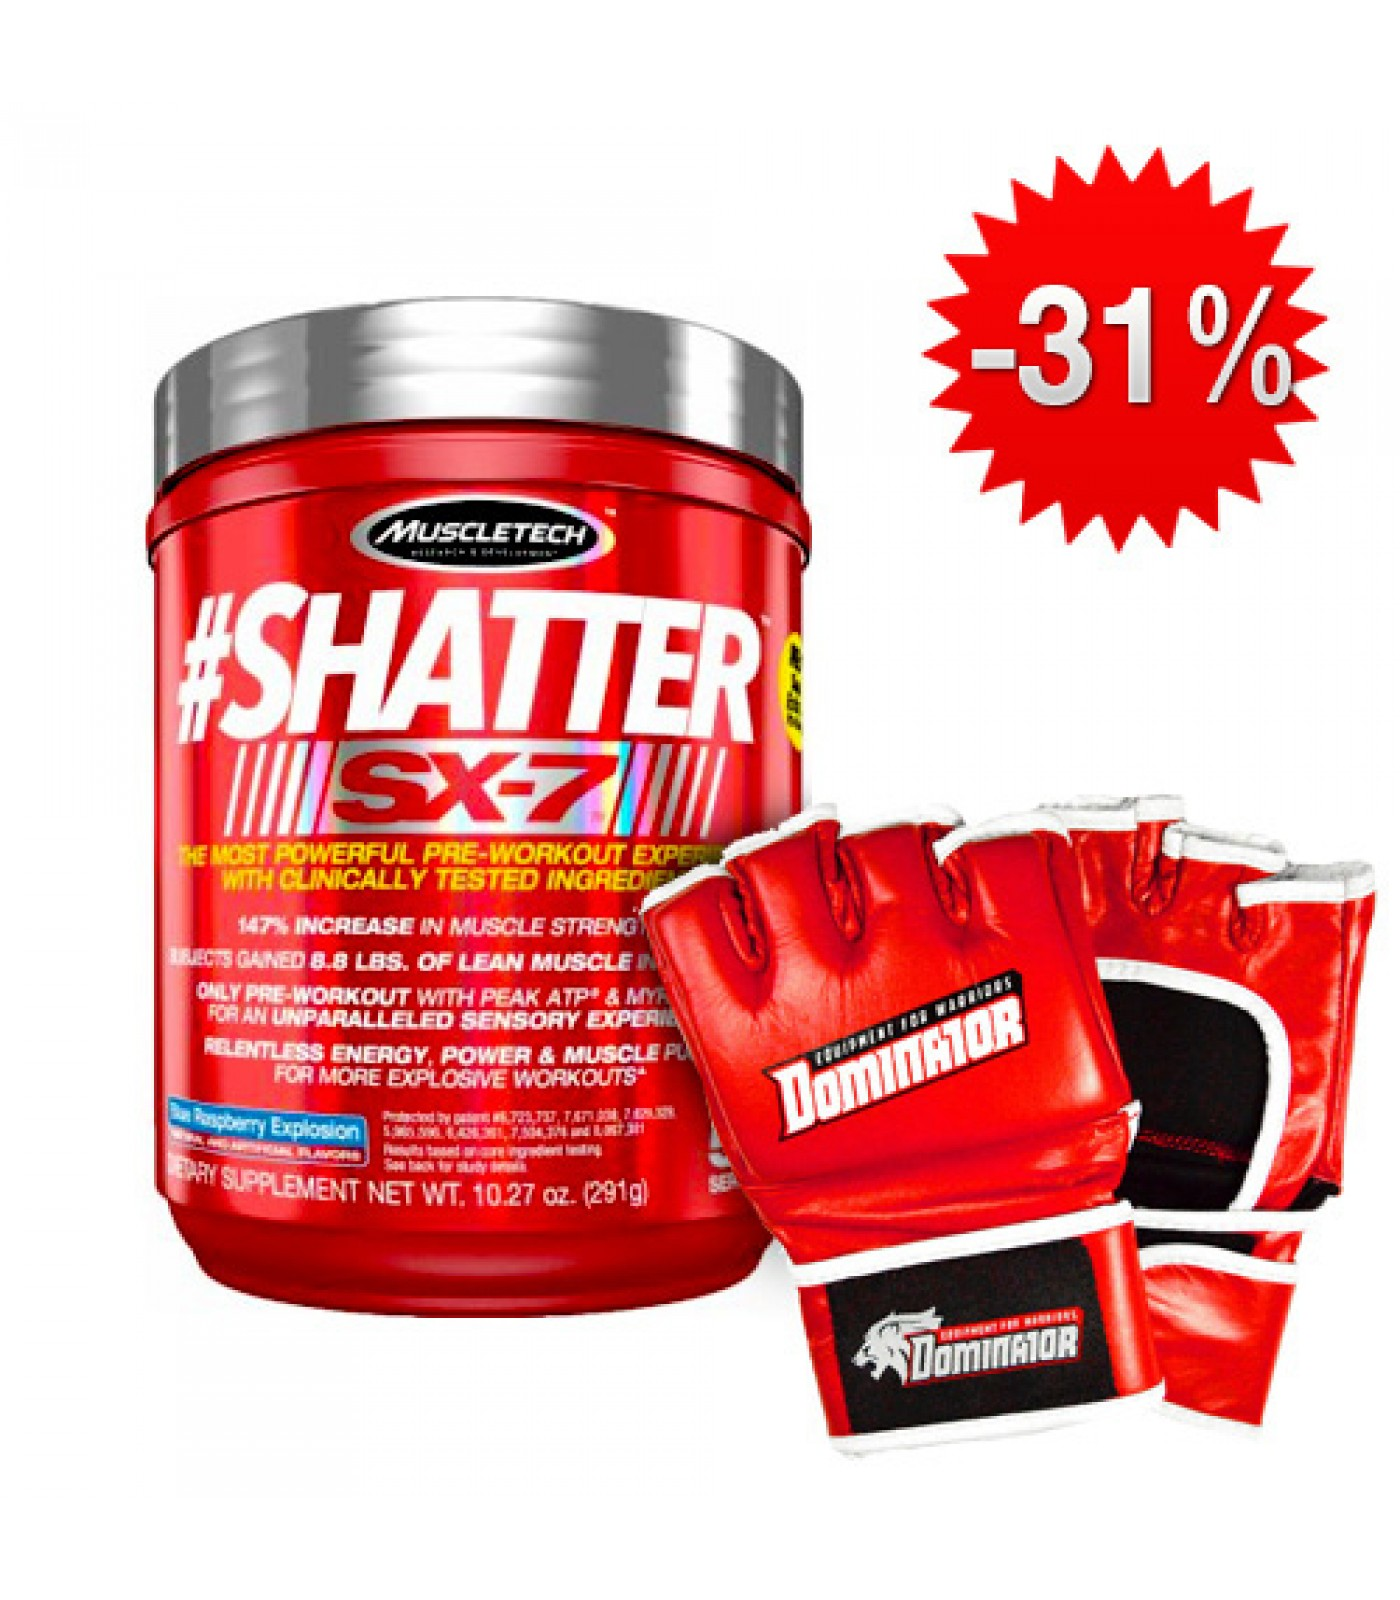 Stack MuscleTech - Shatter SX-7 + Dominator - ММА ръкавици